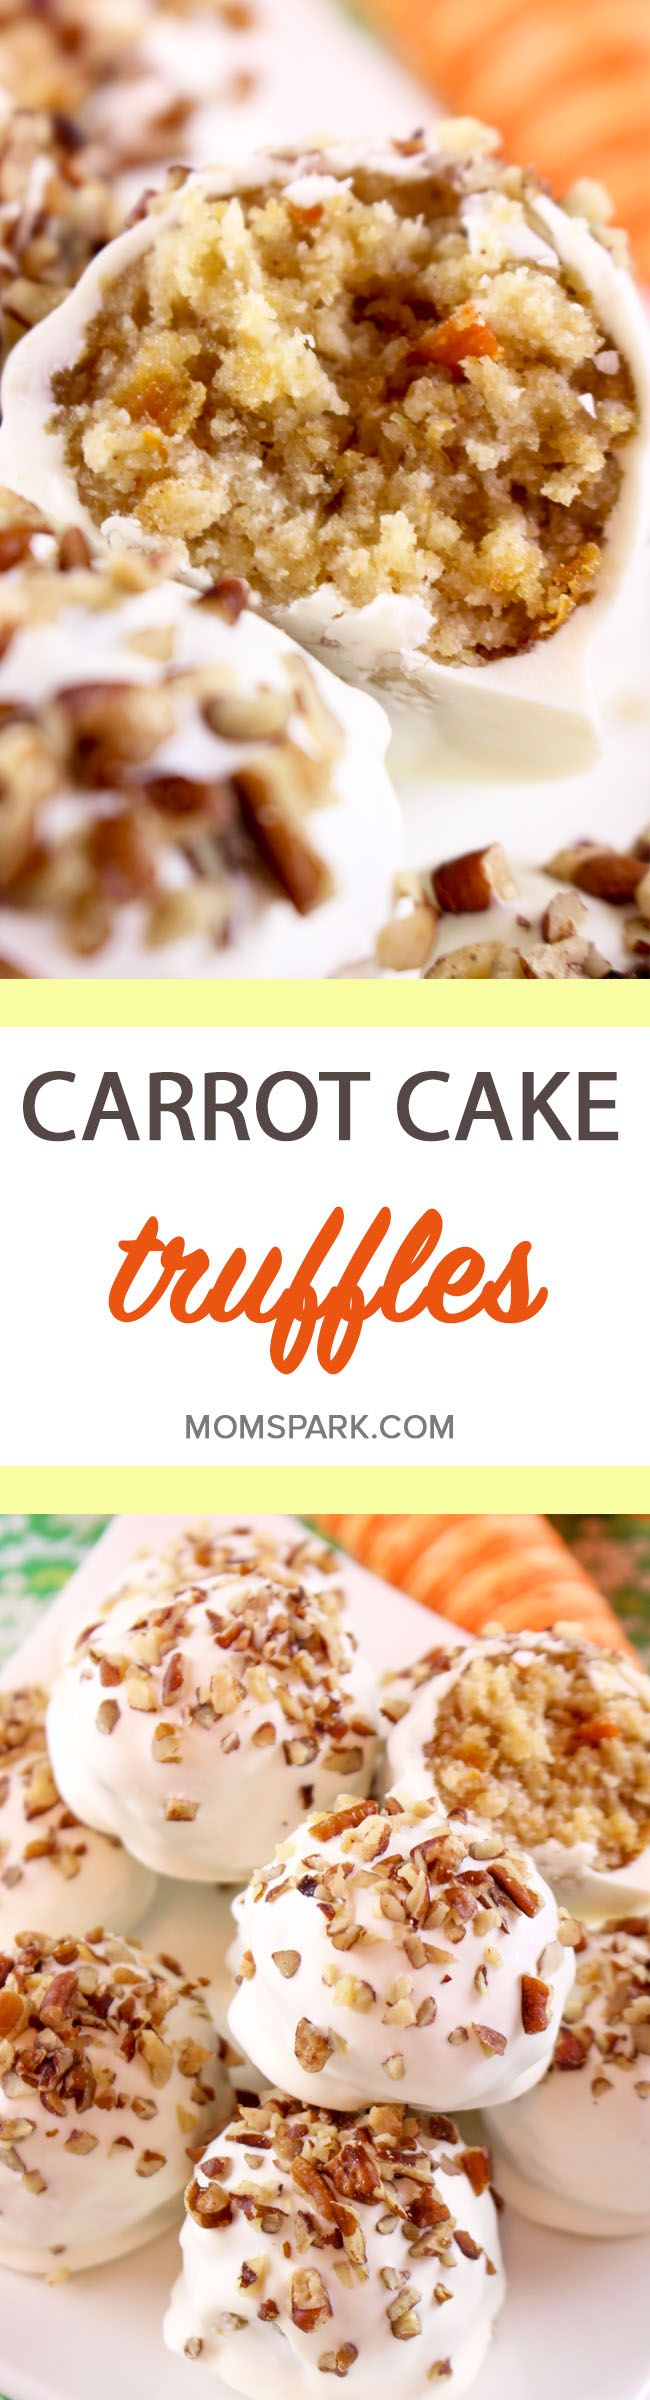 Carrot Cake Truffle Recipe  i love you!  i can bake my own not the now making them love  laughing